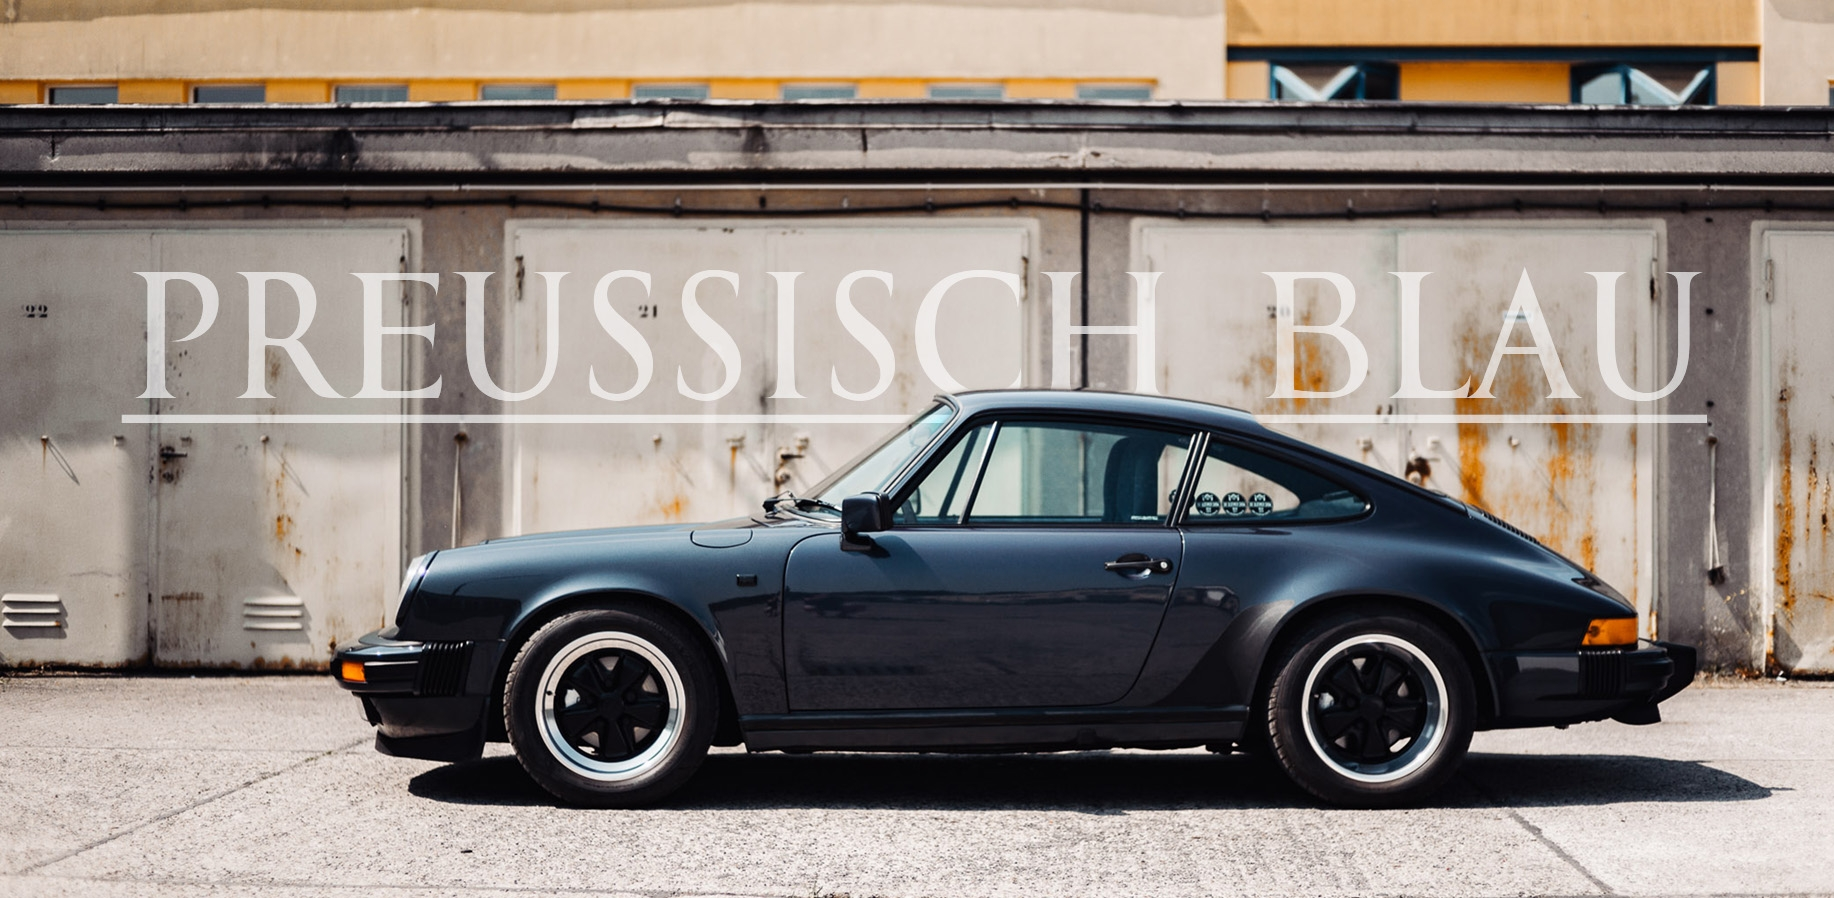 softgarage 1985 Porsche 911 SC